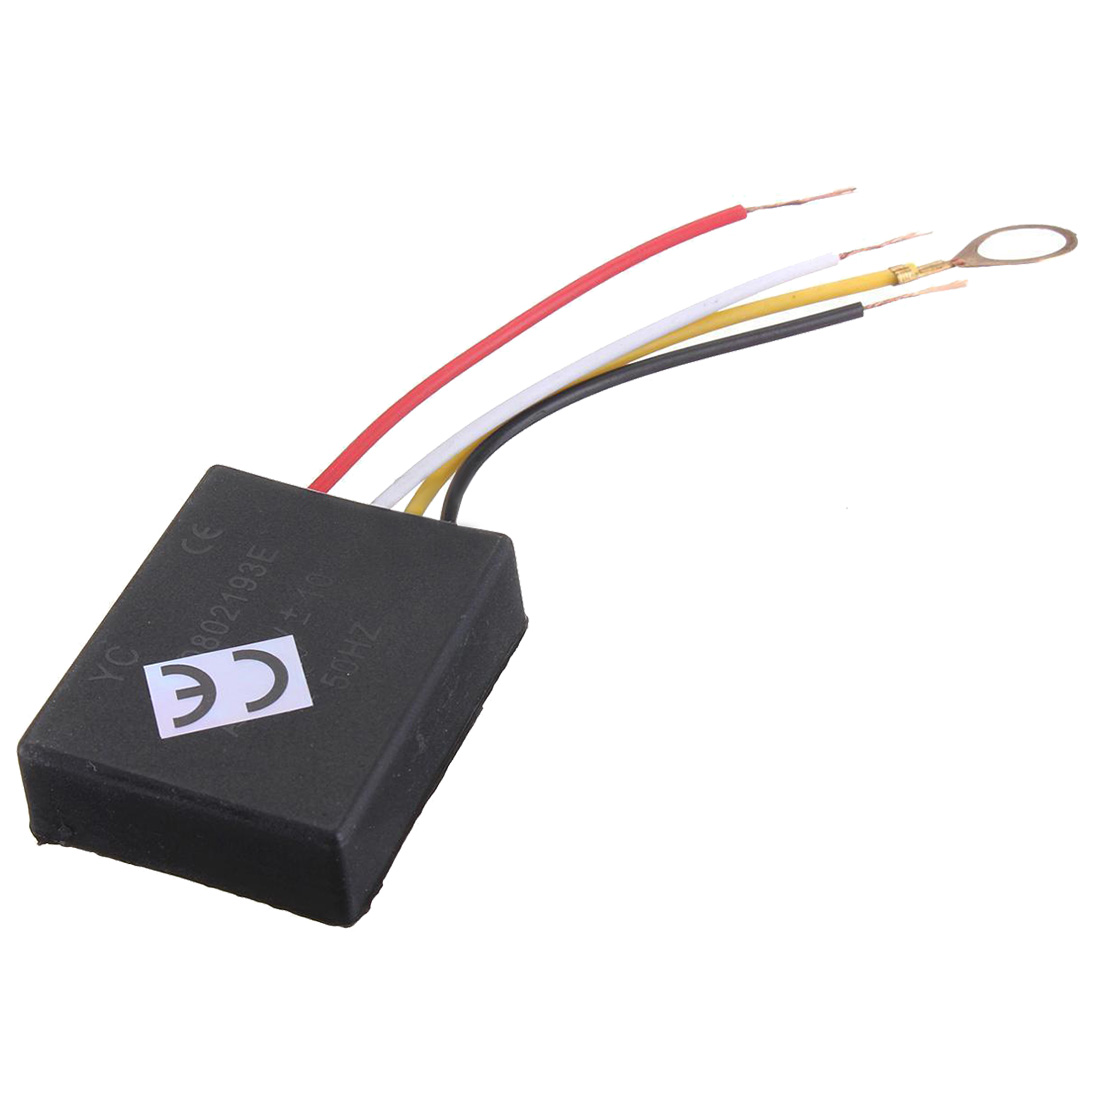 hight resolution of details about 2x 110v 3way light touch sensor switch control for lamp bulb dimmer repair g6g9